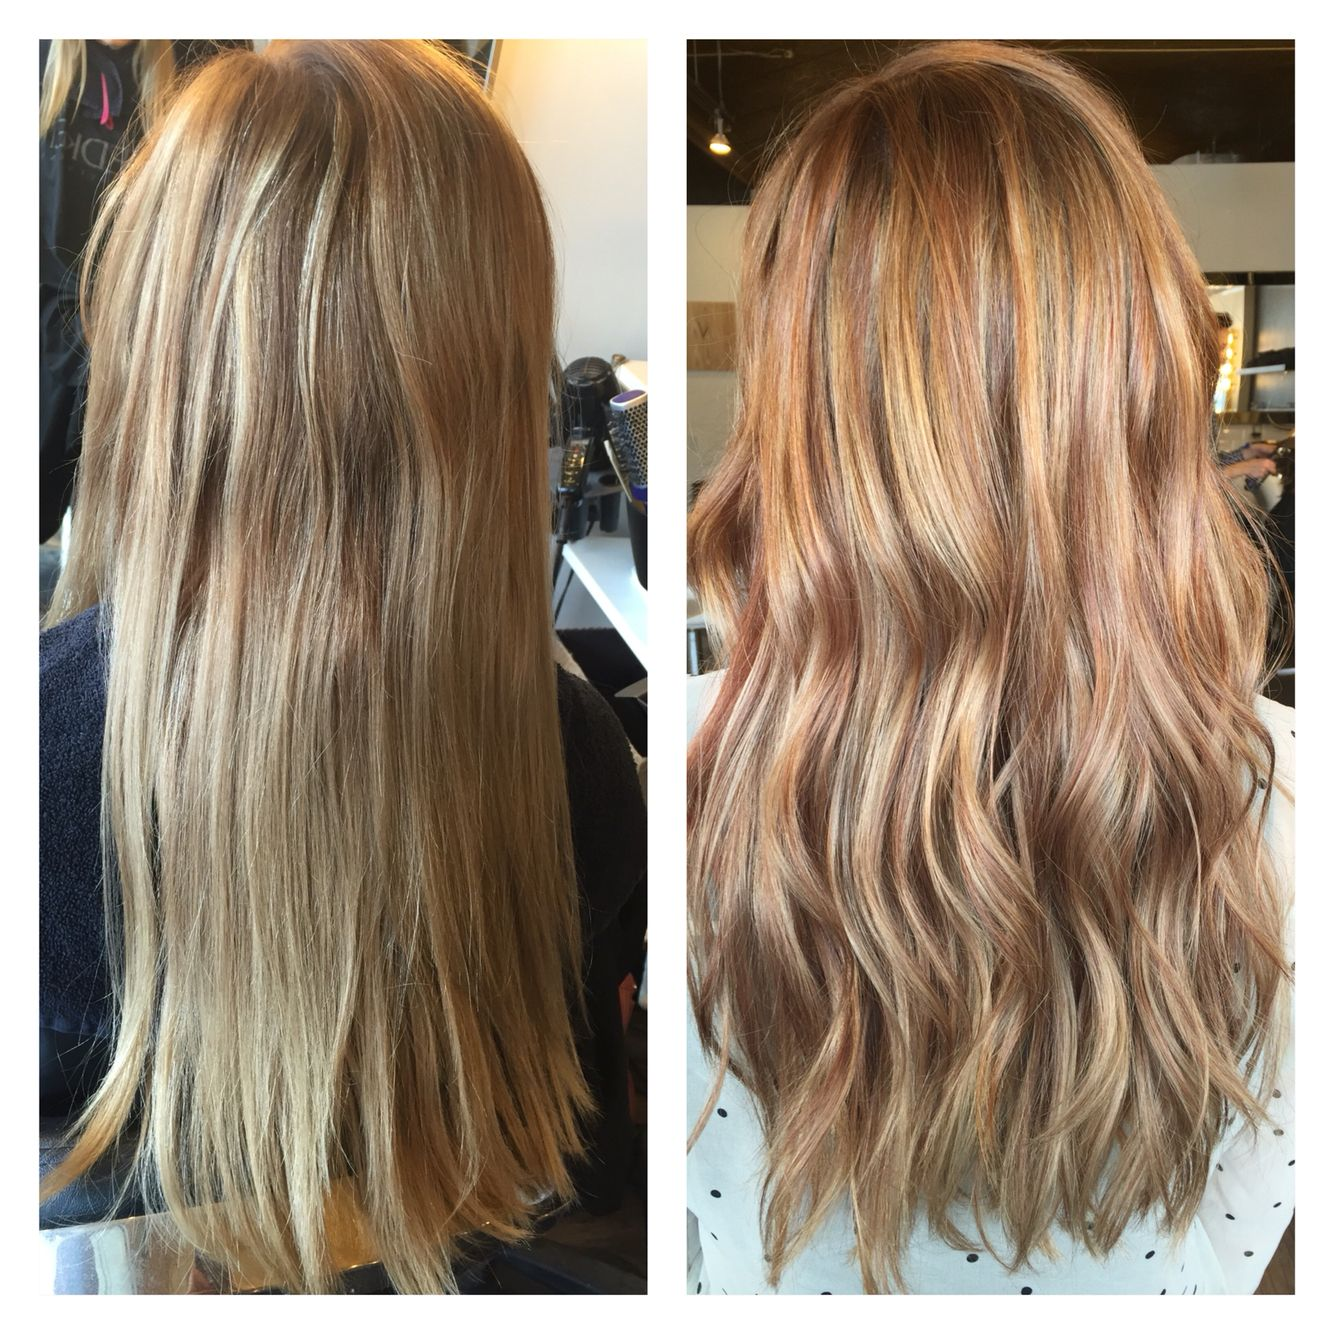 My New Hair Before And After Picture I Had Copper Red Lowlights Done Throughout And Toned Blonde Hair With Copper Lowlights Dark Blonde Hair Strawberry Hair